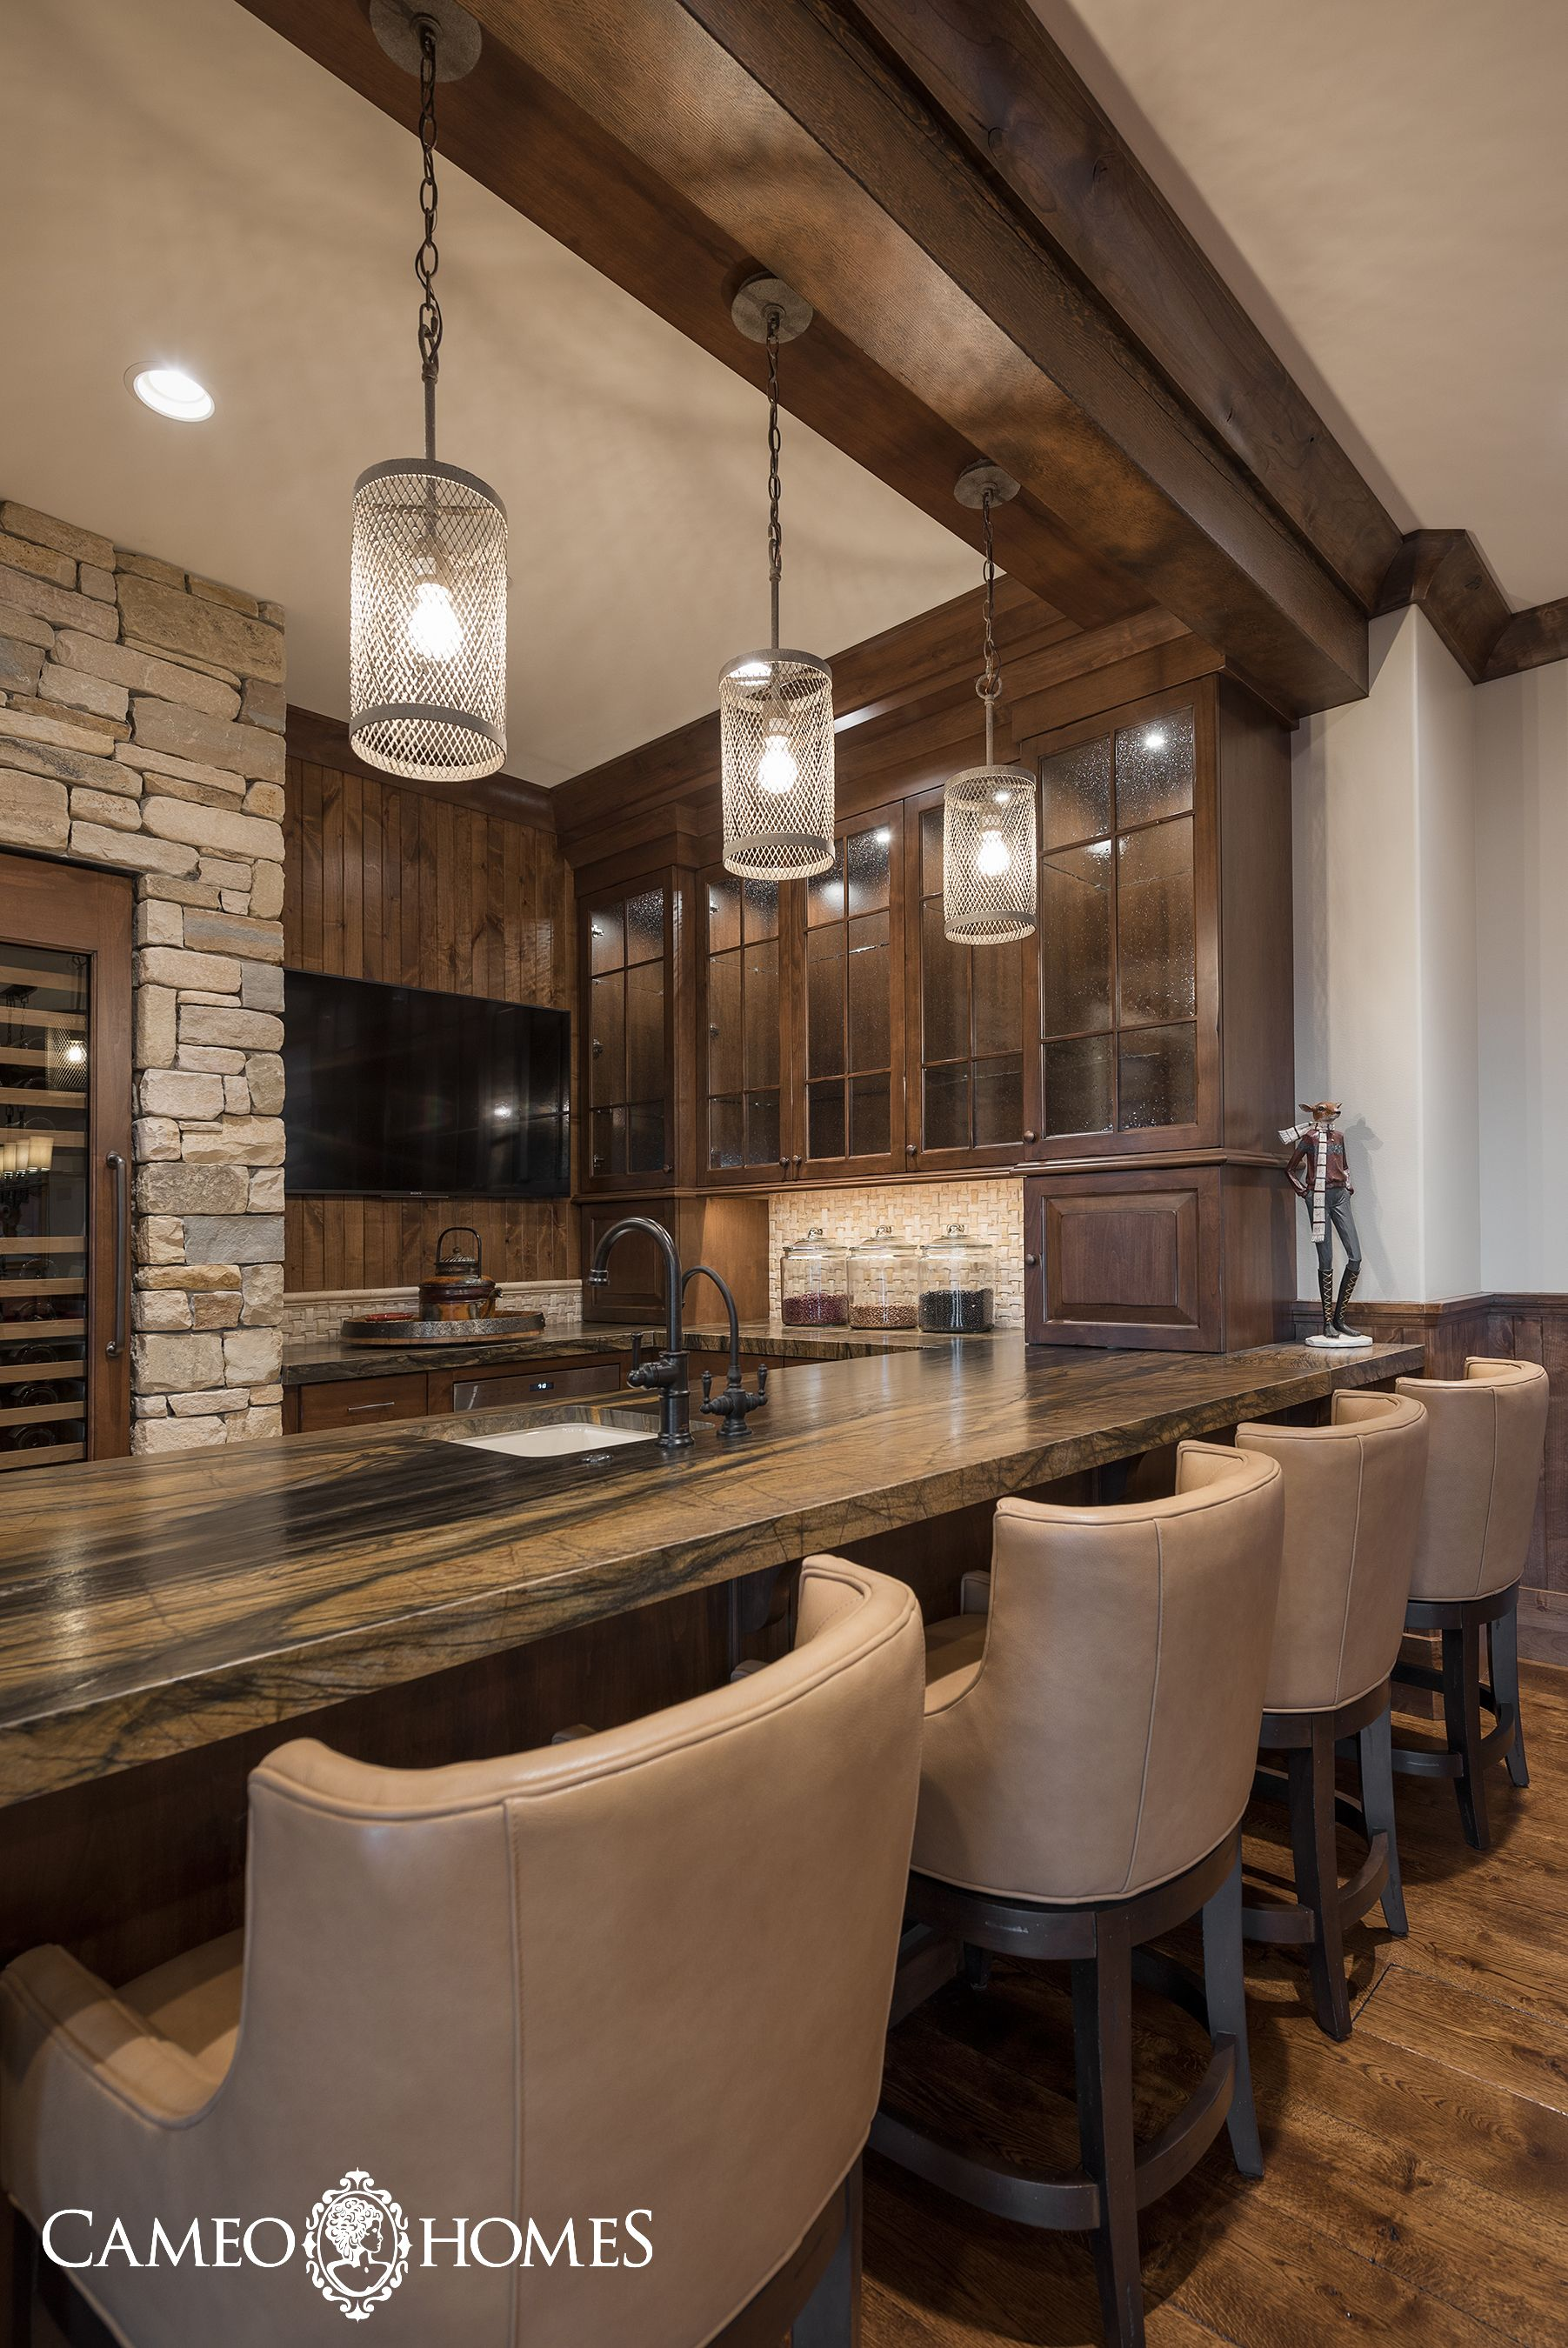 Perfect bar stools in this basement kitchen. Park City Home Builders ...